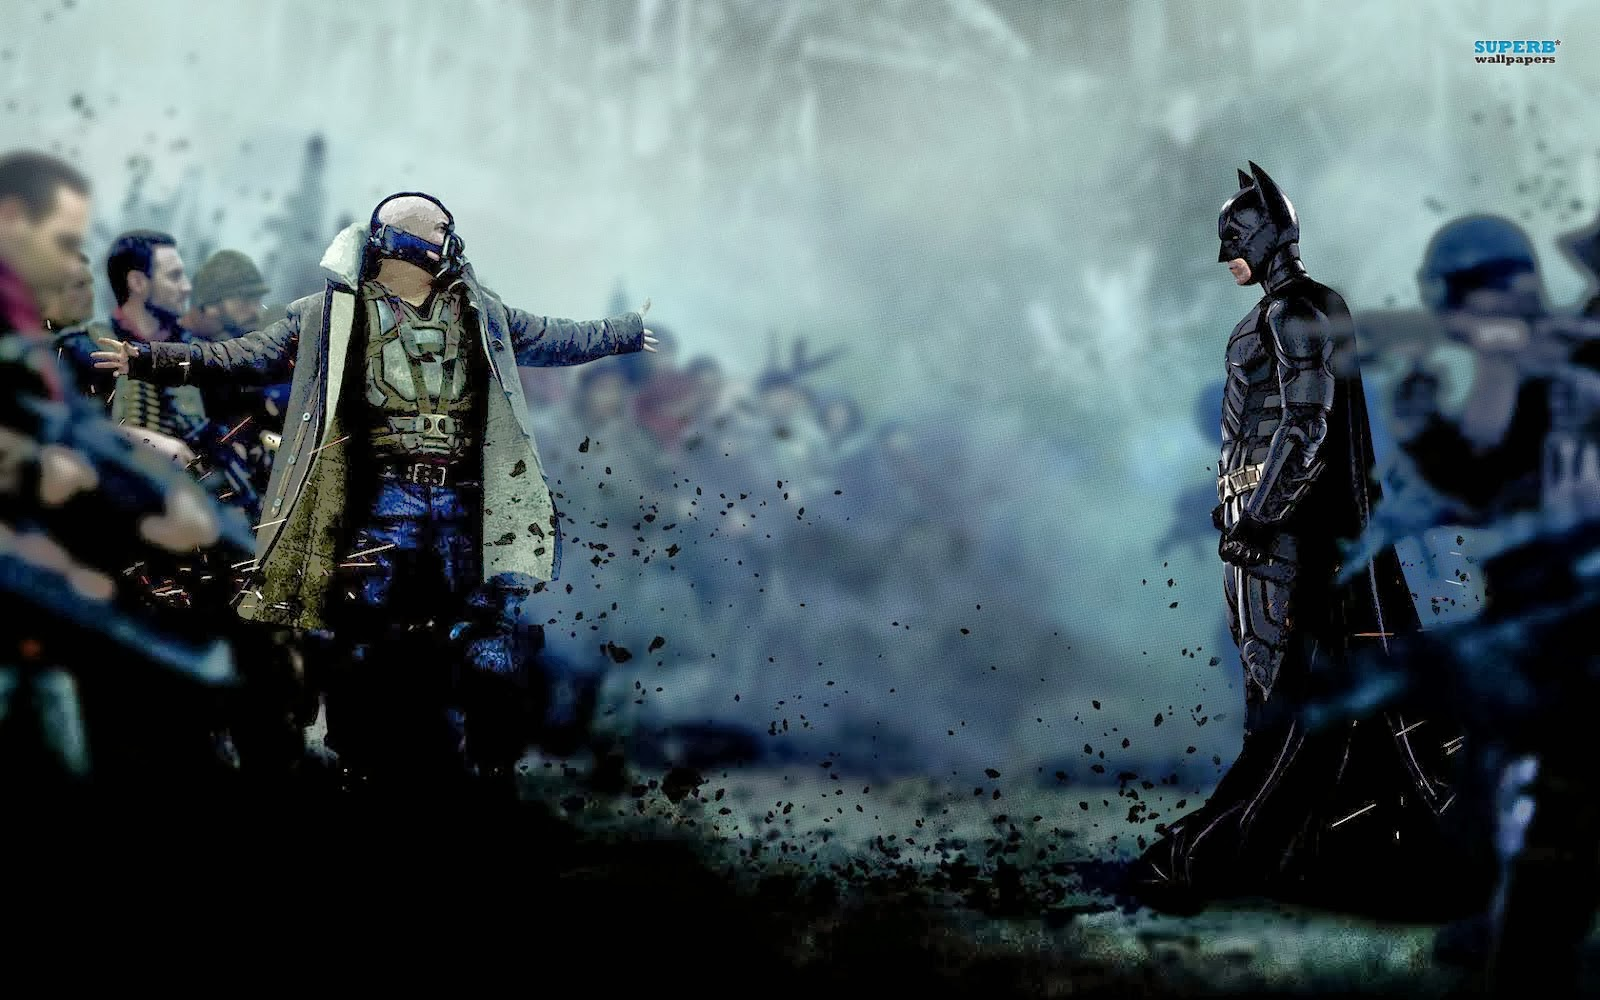 Liam Neeson Iphone Wallpaper Bane And Batman The Dark Knight Rises Free Wallpapers